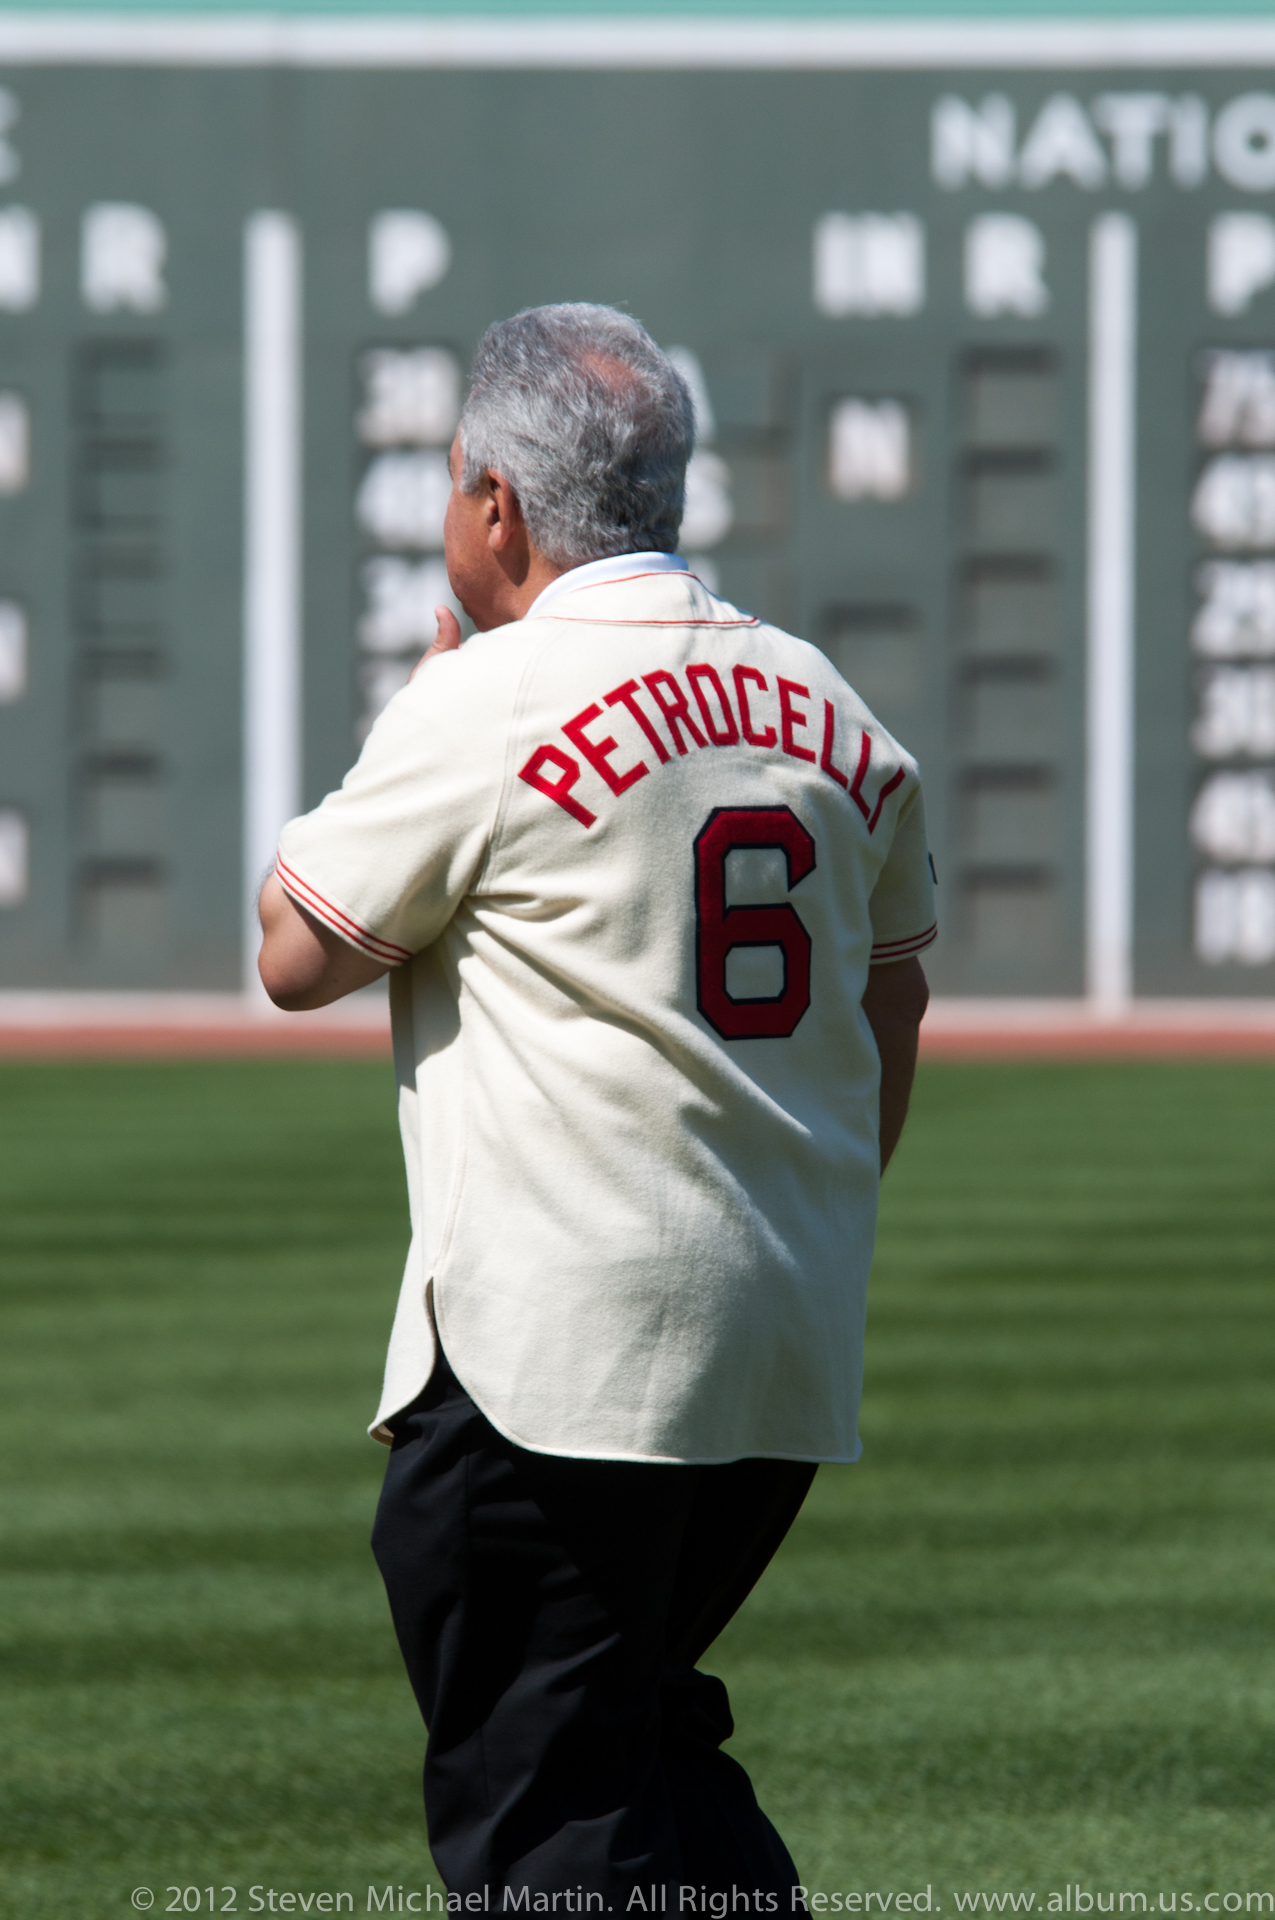 Red_Sox_100_Years_20120420_SMartin_0068